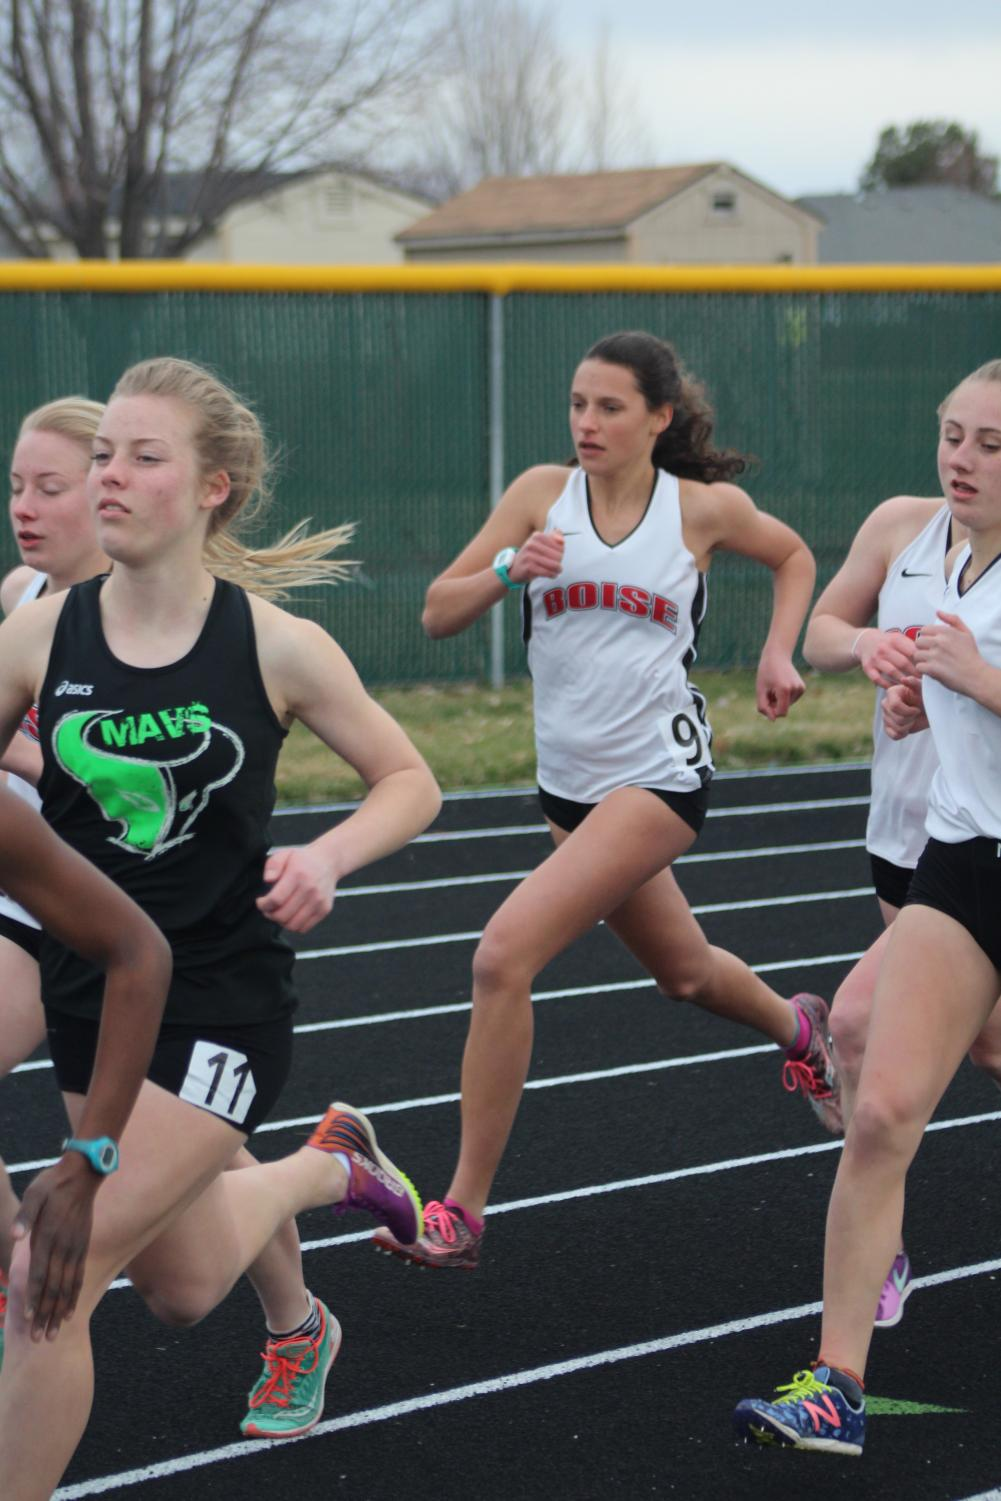 Long-distance athletes battle it out against other schools in the mile run.